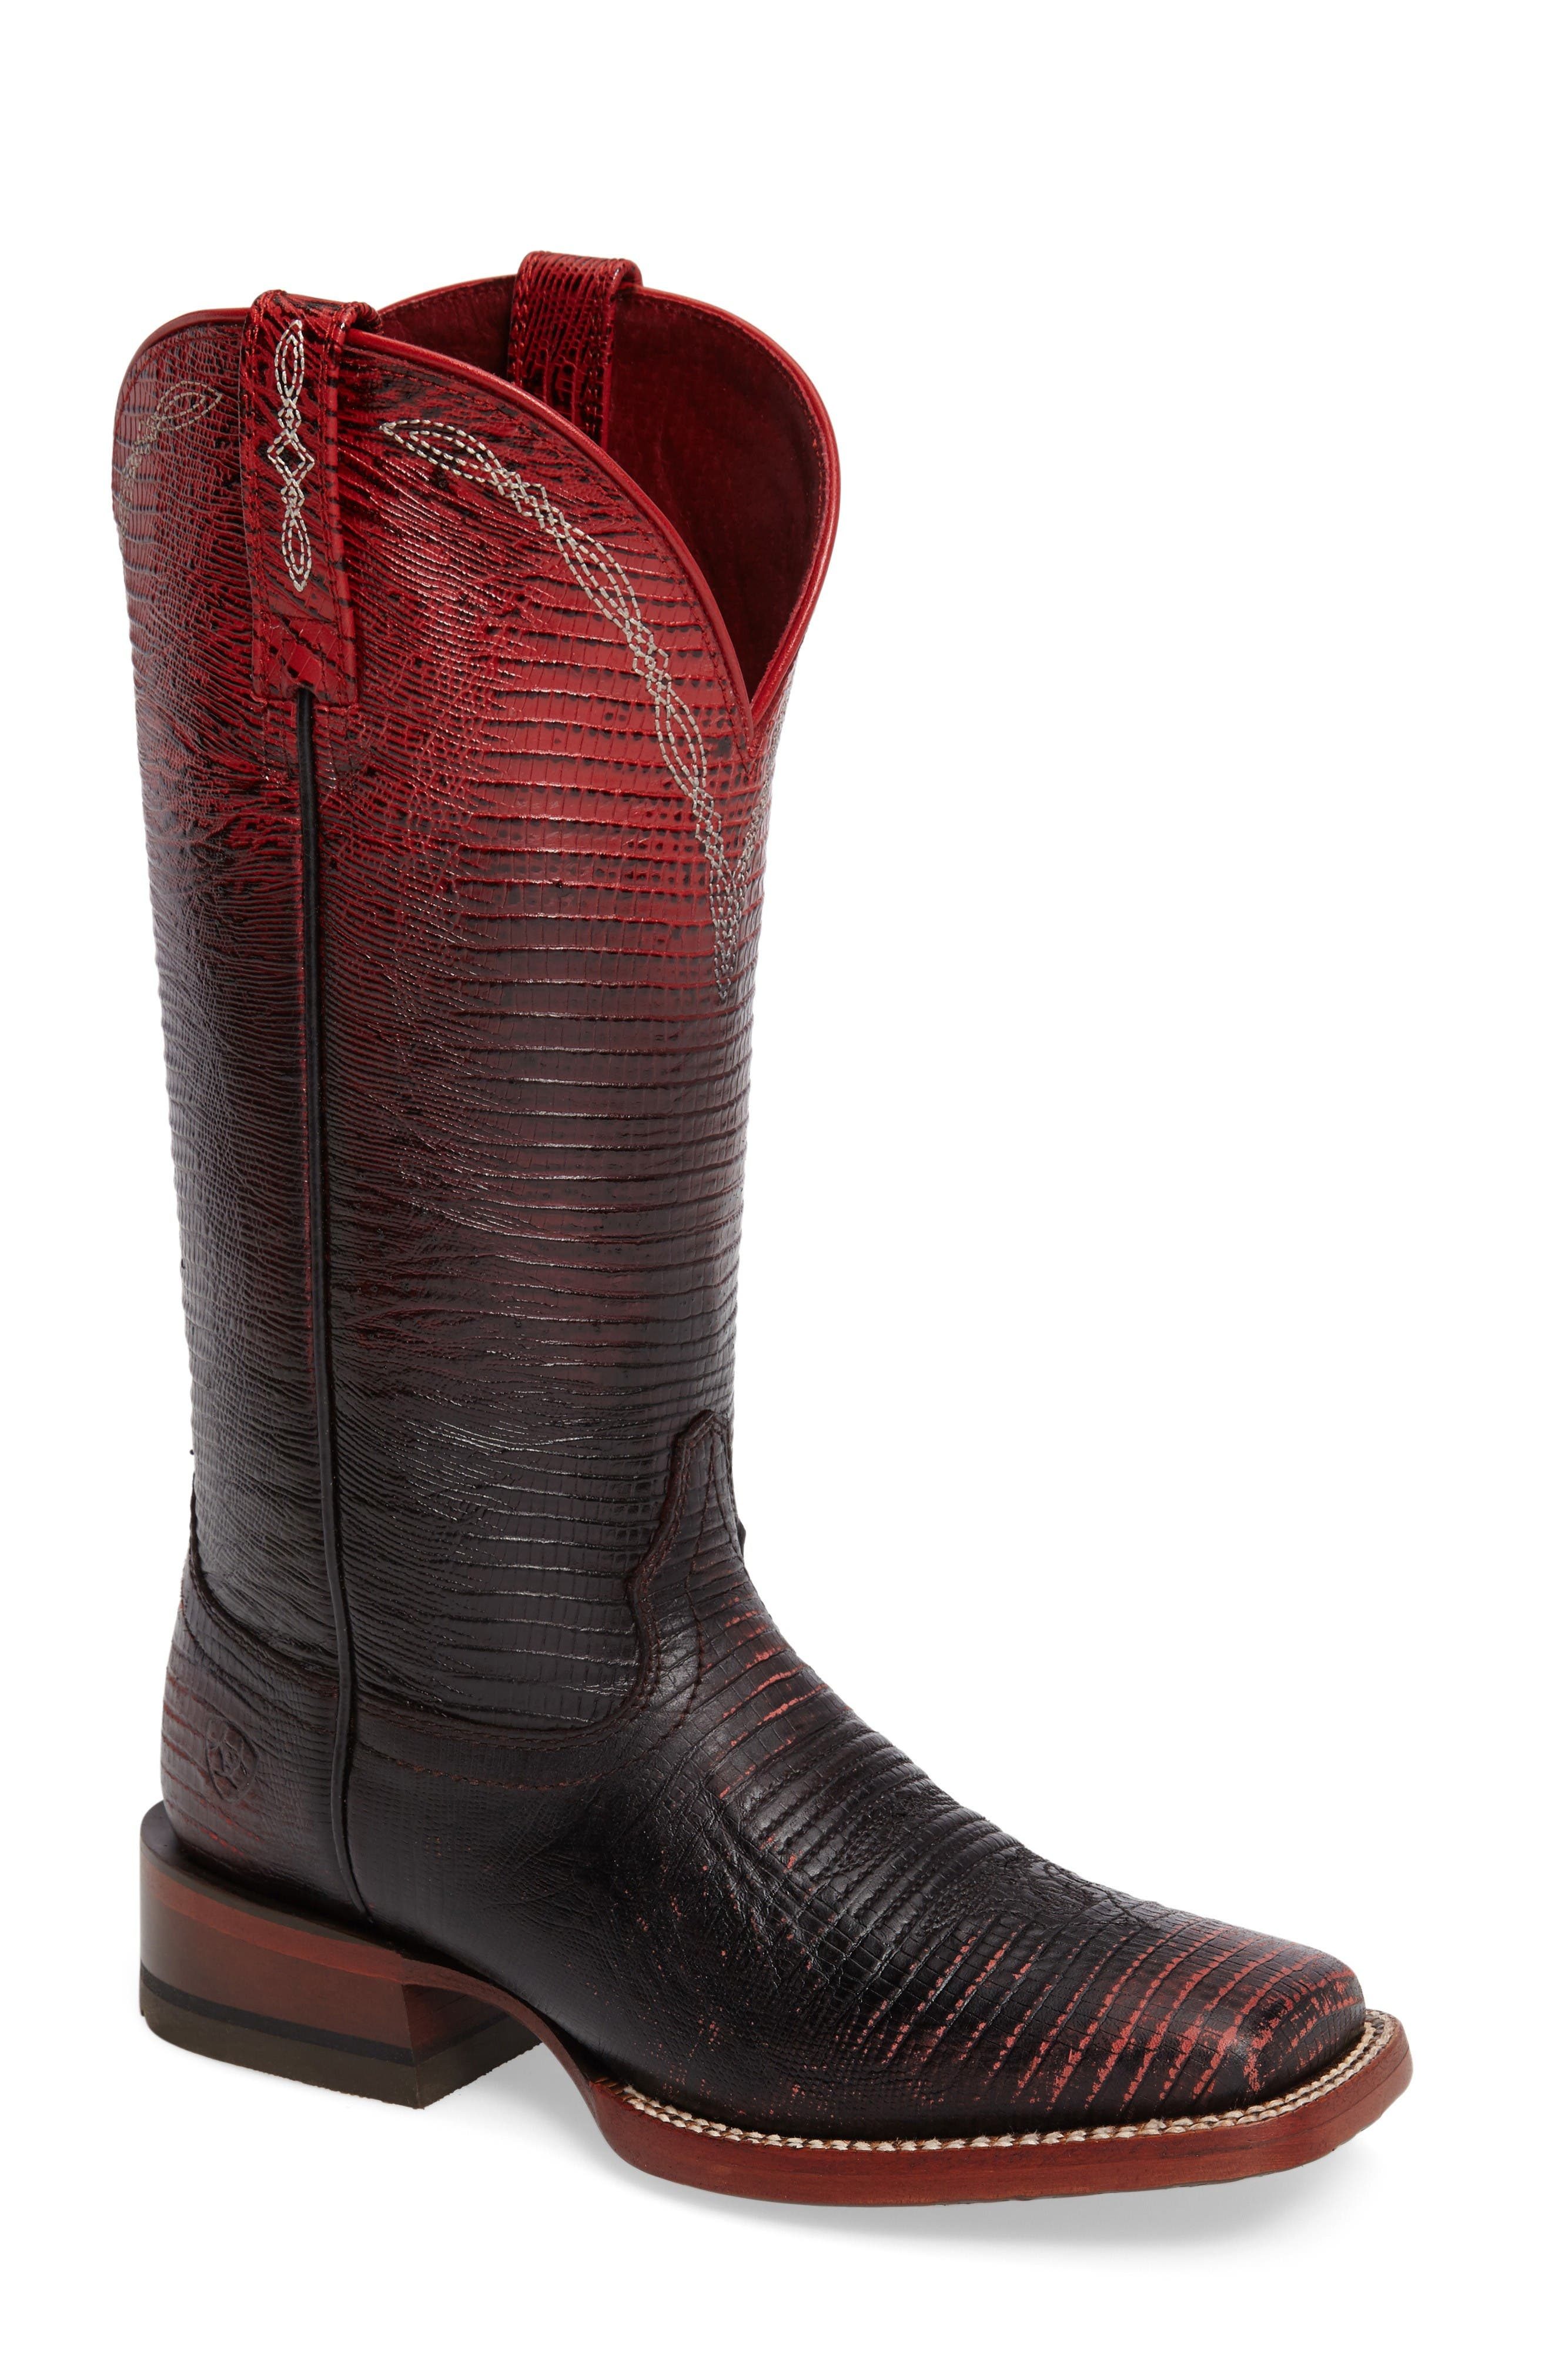 Alternate Image 1 Selected - Ariat Ombré Square Toe Western Boot (Women)